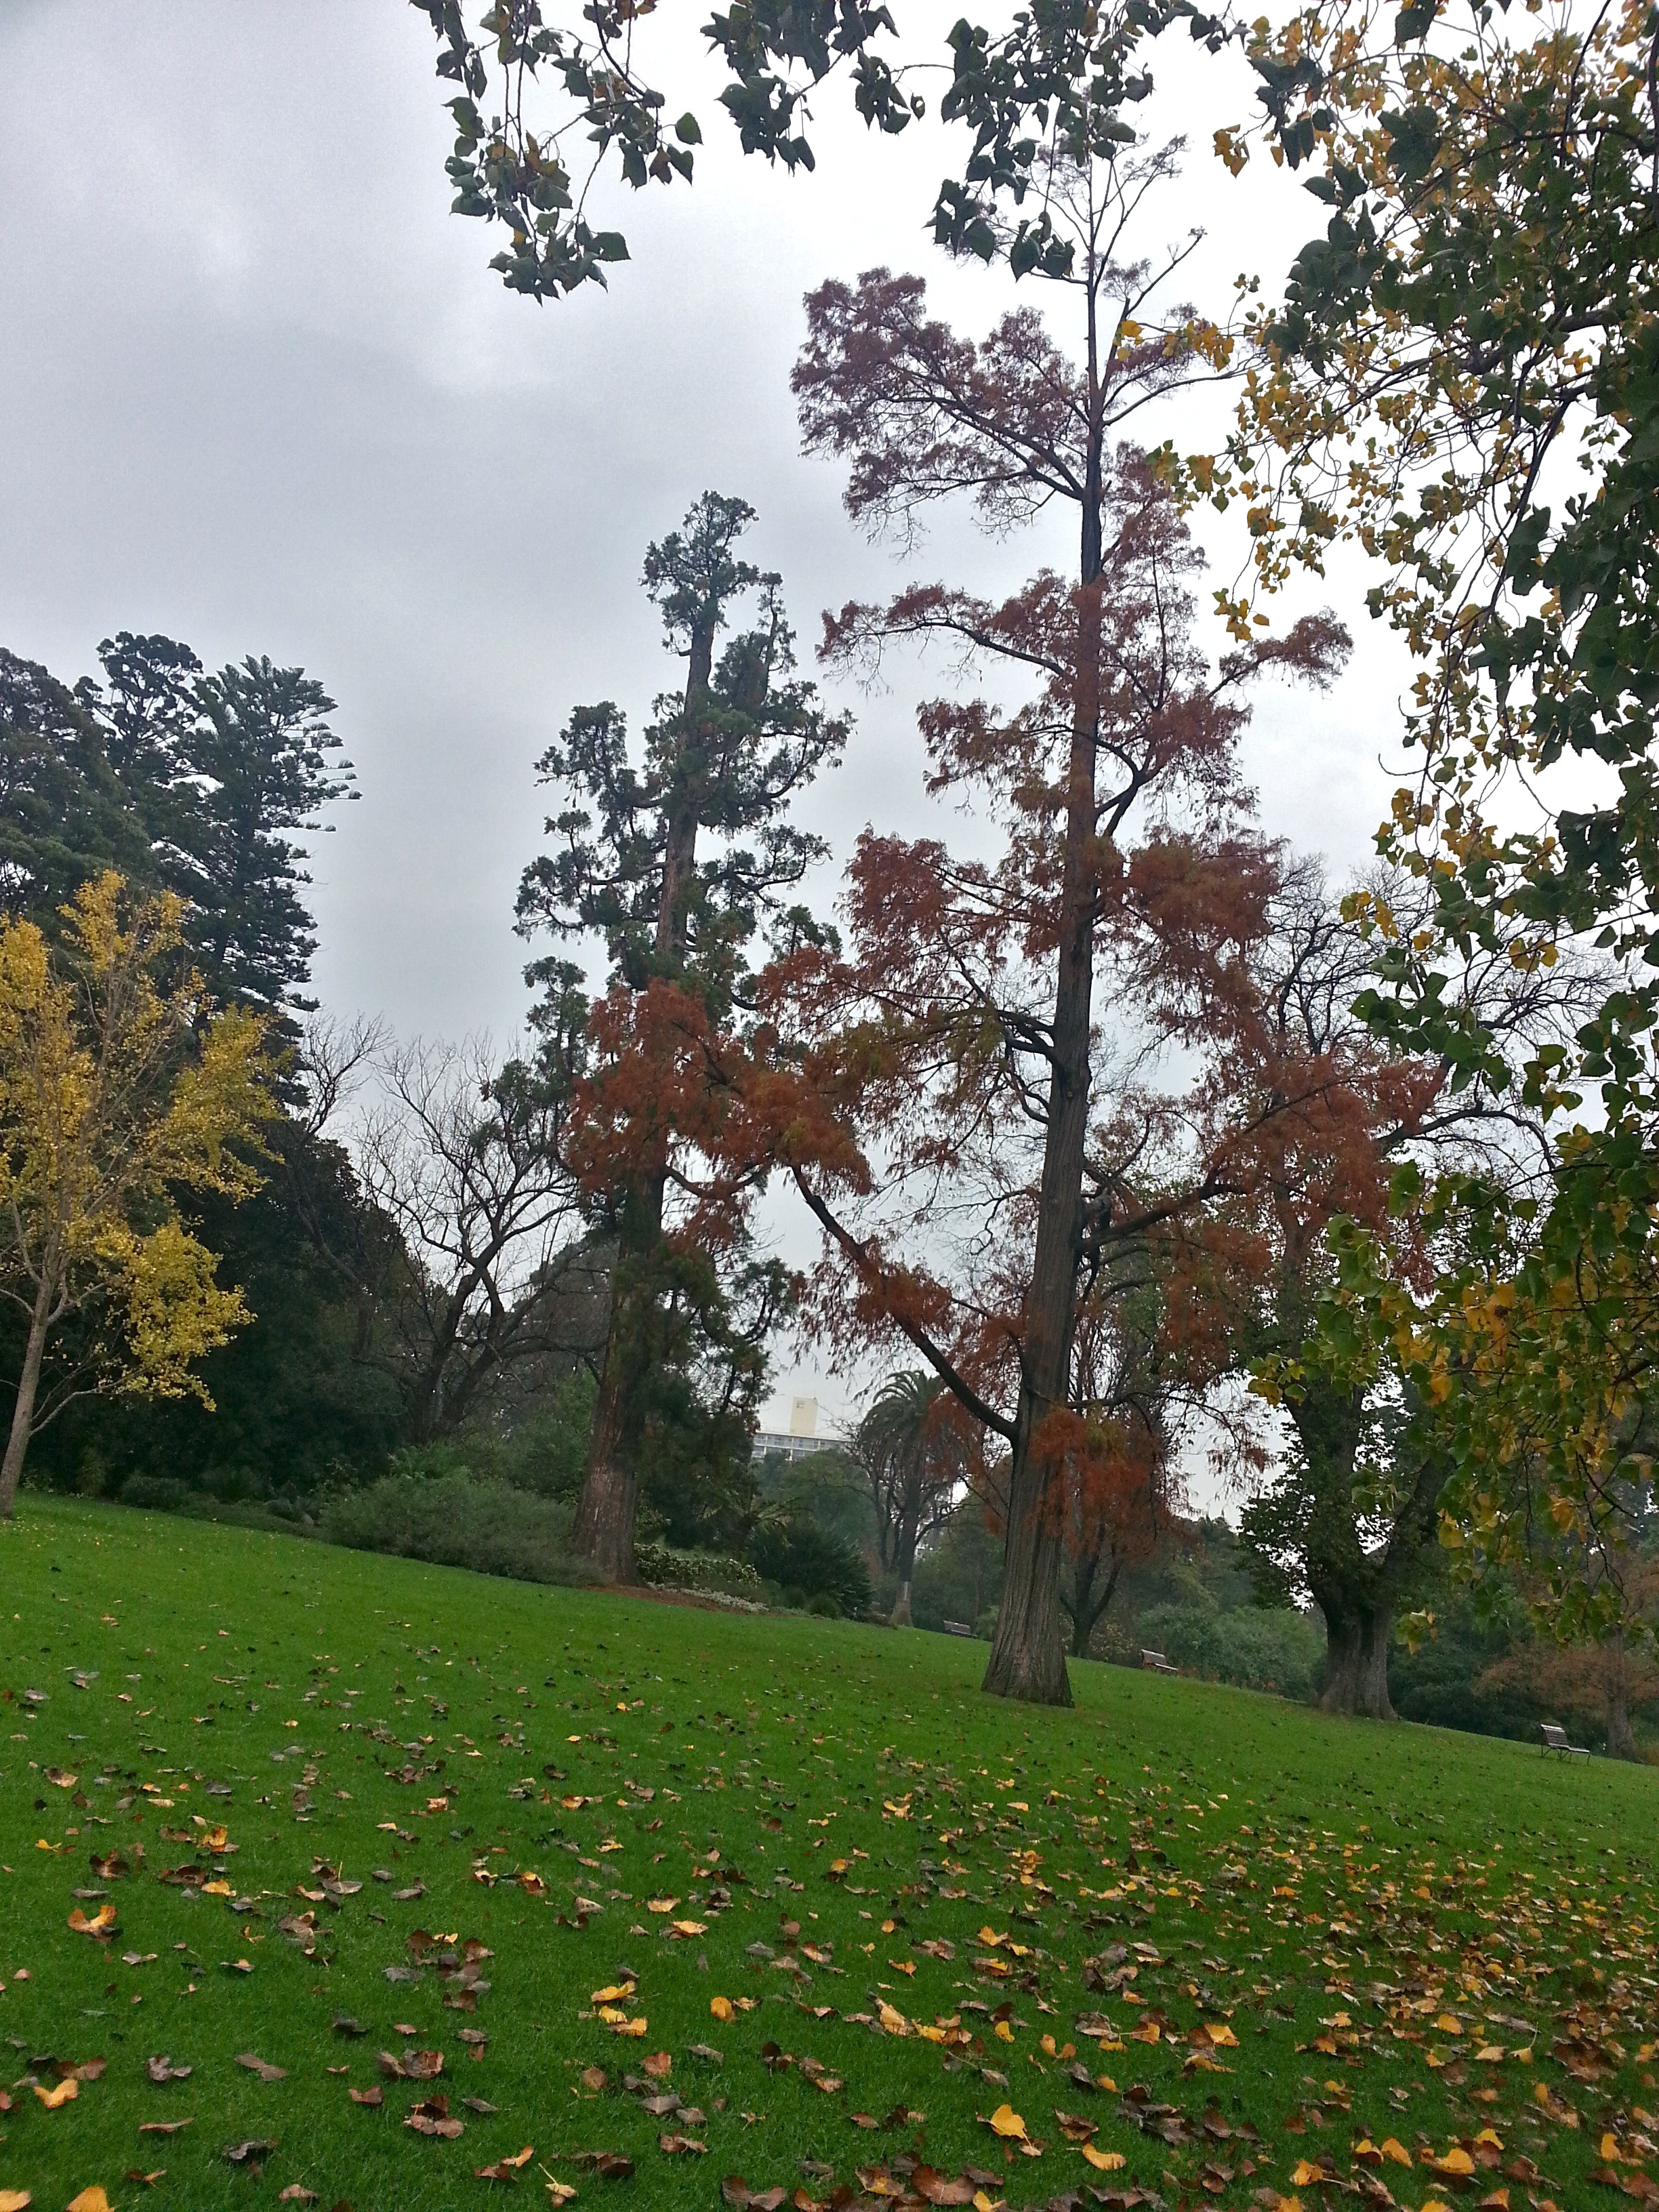 a rainy day in the royal botanic gardens melbourne melbourne